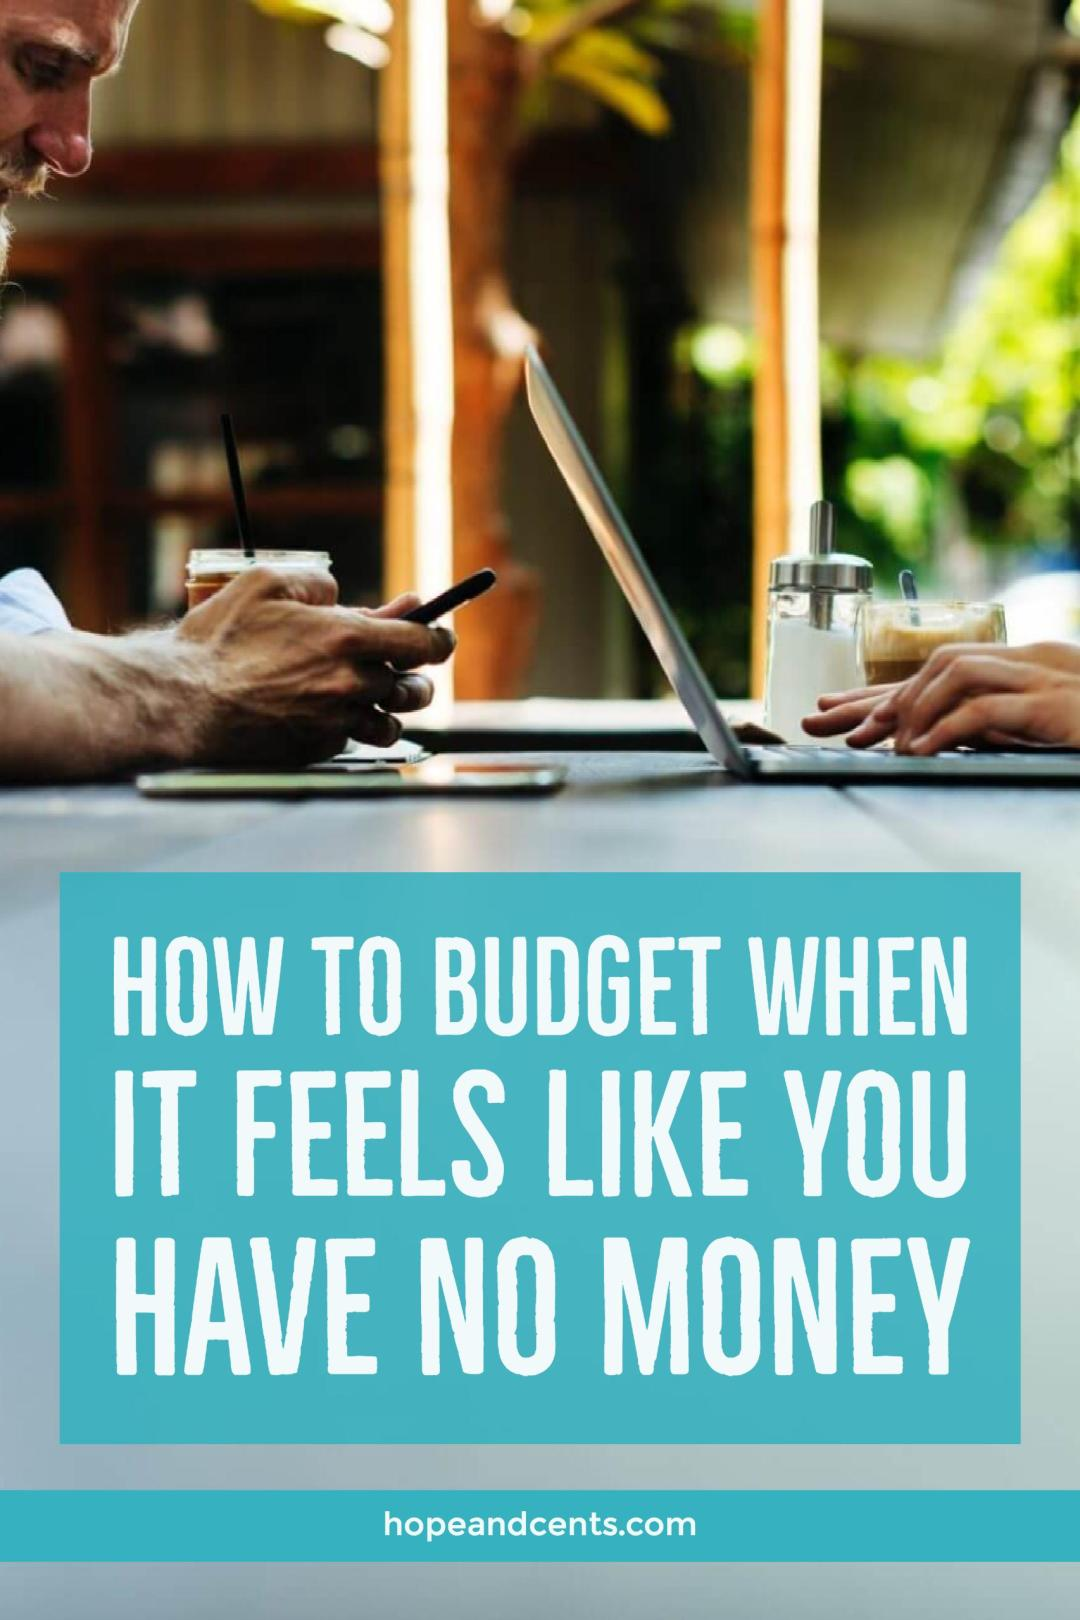 Love this! Learning how to budget can help you go from living paycheck to paycheck to having room in your budget for saving, paying off debt, and meeting other financial goals.